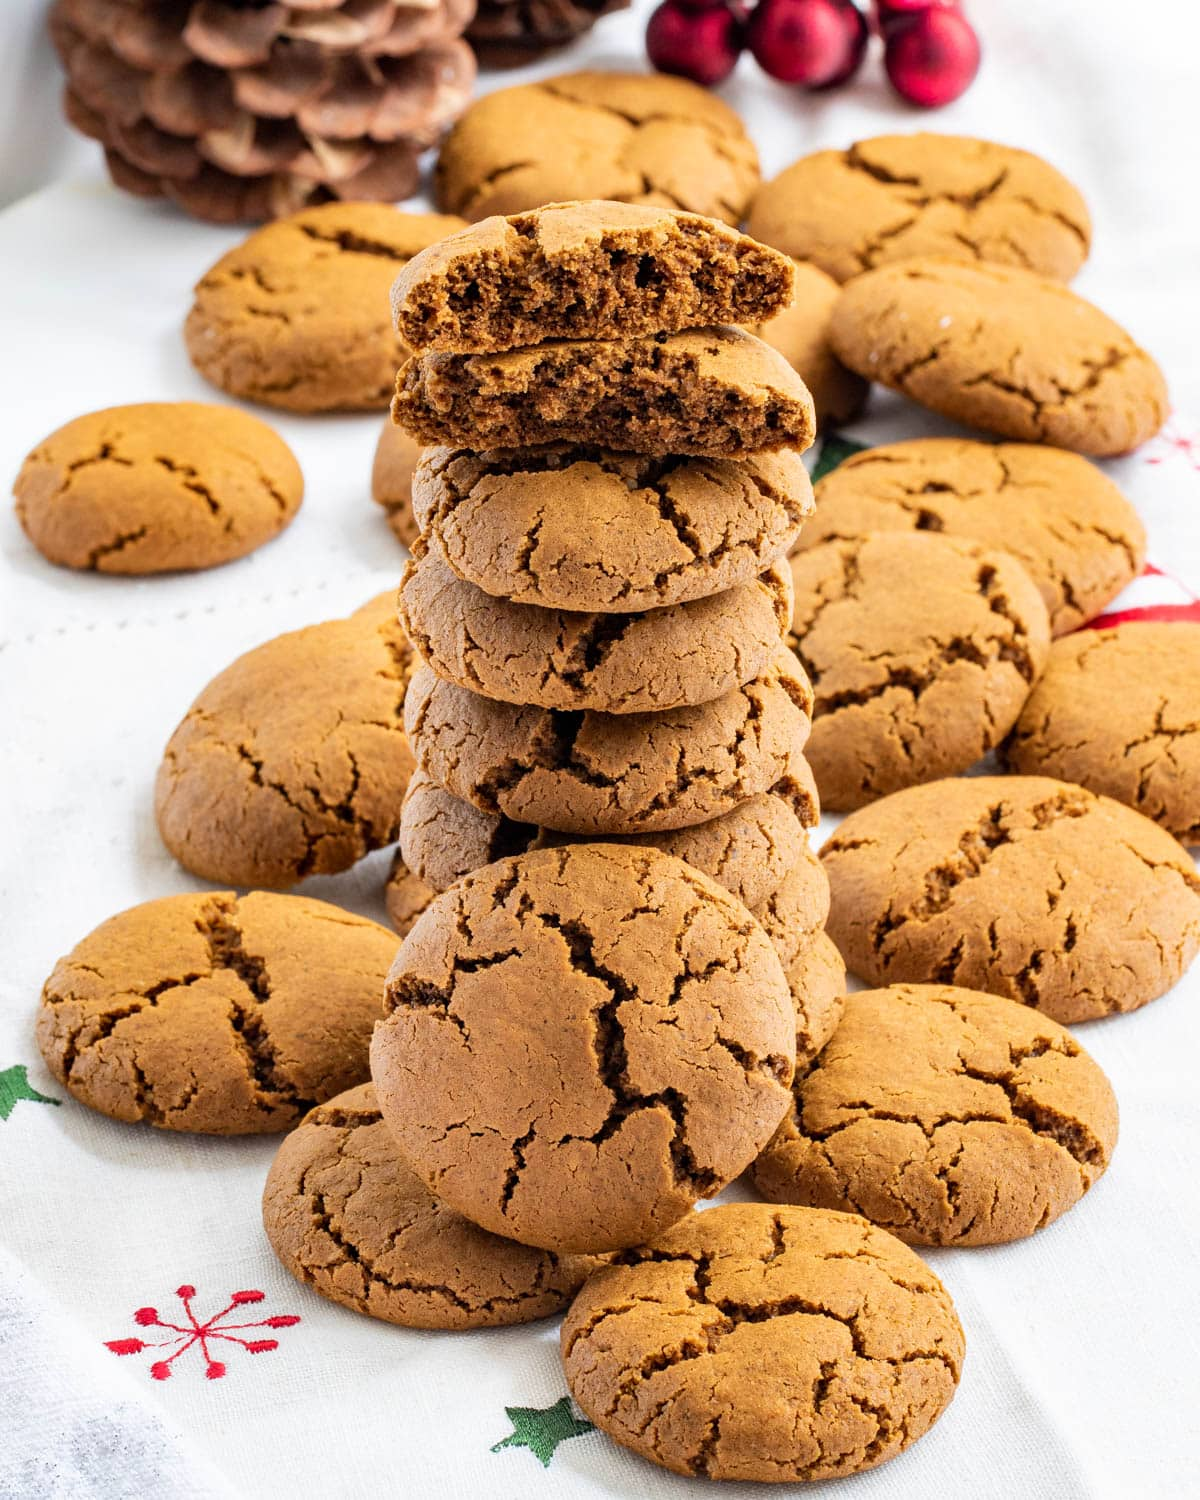 stack of chewy gingerbread cookies on a Christmas-themed table cloth.